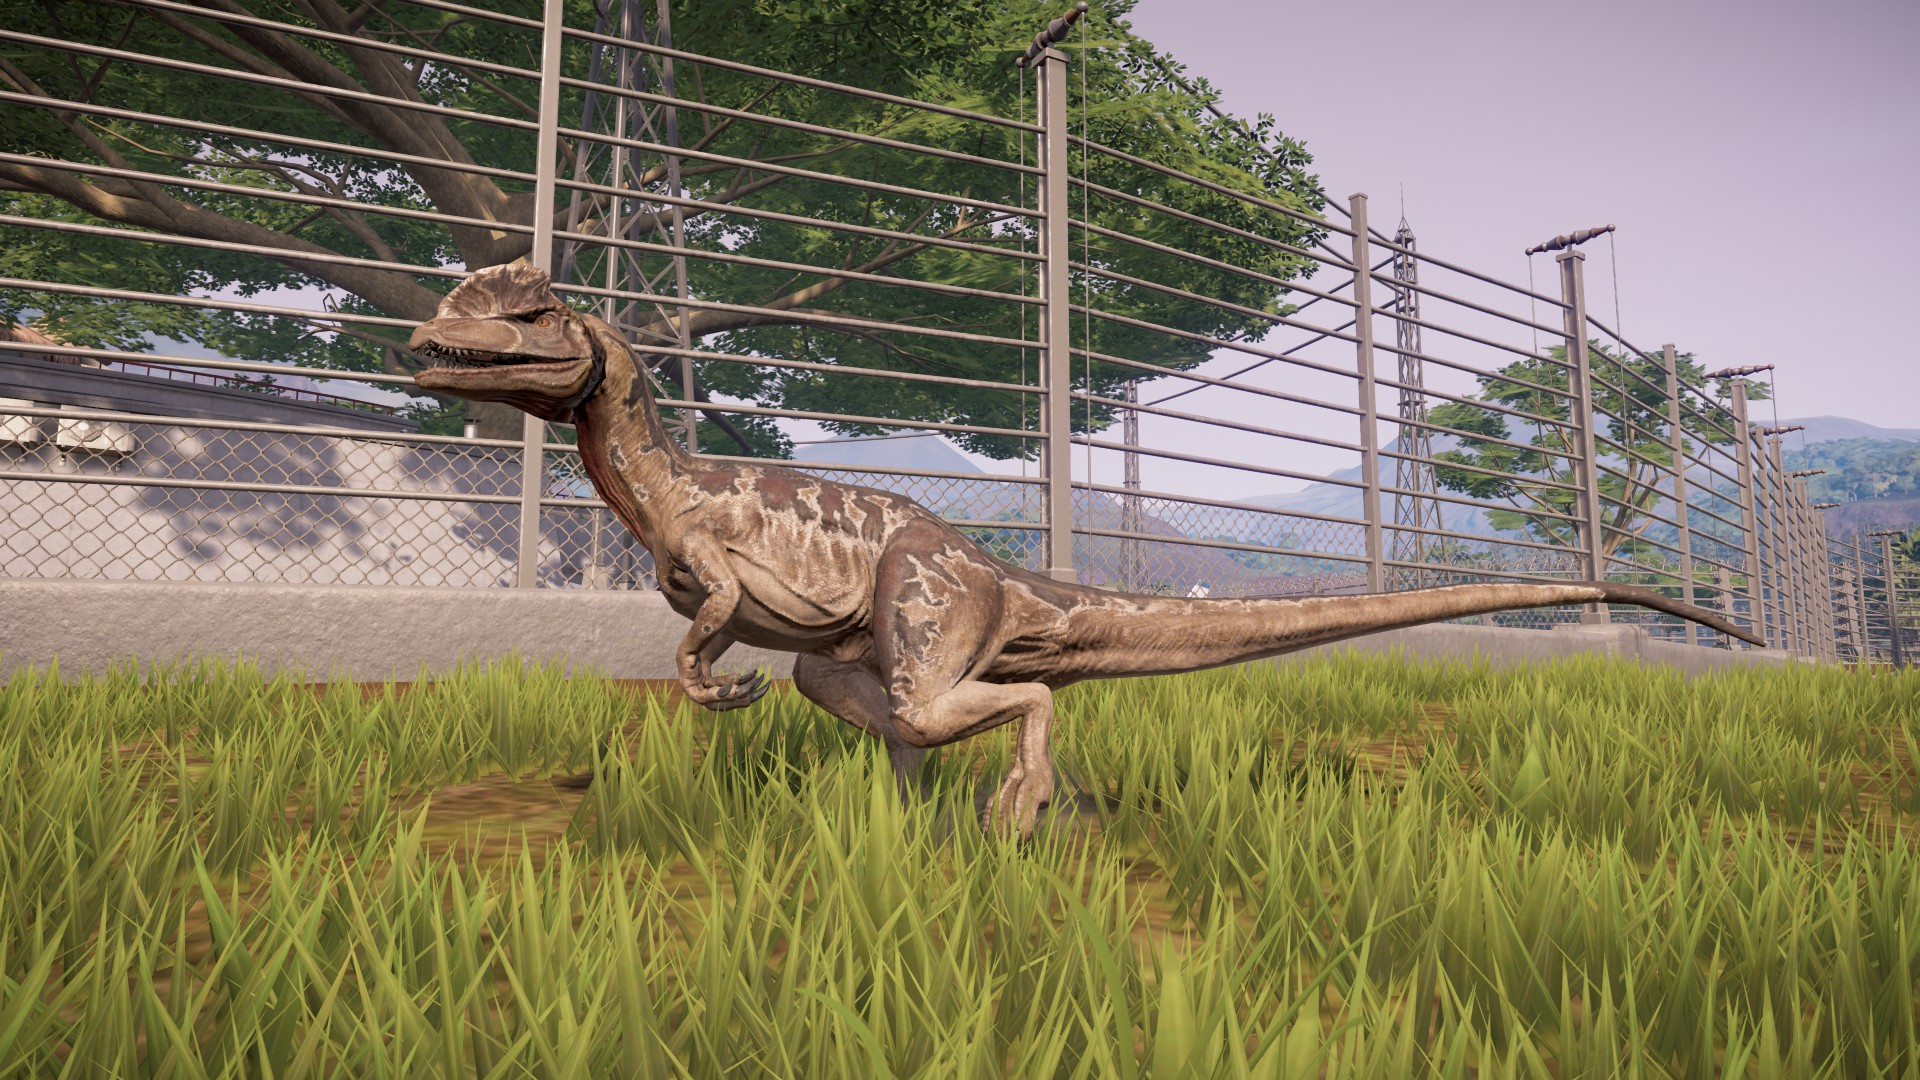 Dilophosaurus Paleontological Edits Blackfrog Jurassic World Evolution Mod Database Wiki Fandom Check out inspiring examples of jurassic_world_evolution artwork on deviantart, and get inspired by our community of talented artists. jurassic world evolution mod database